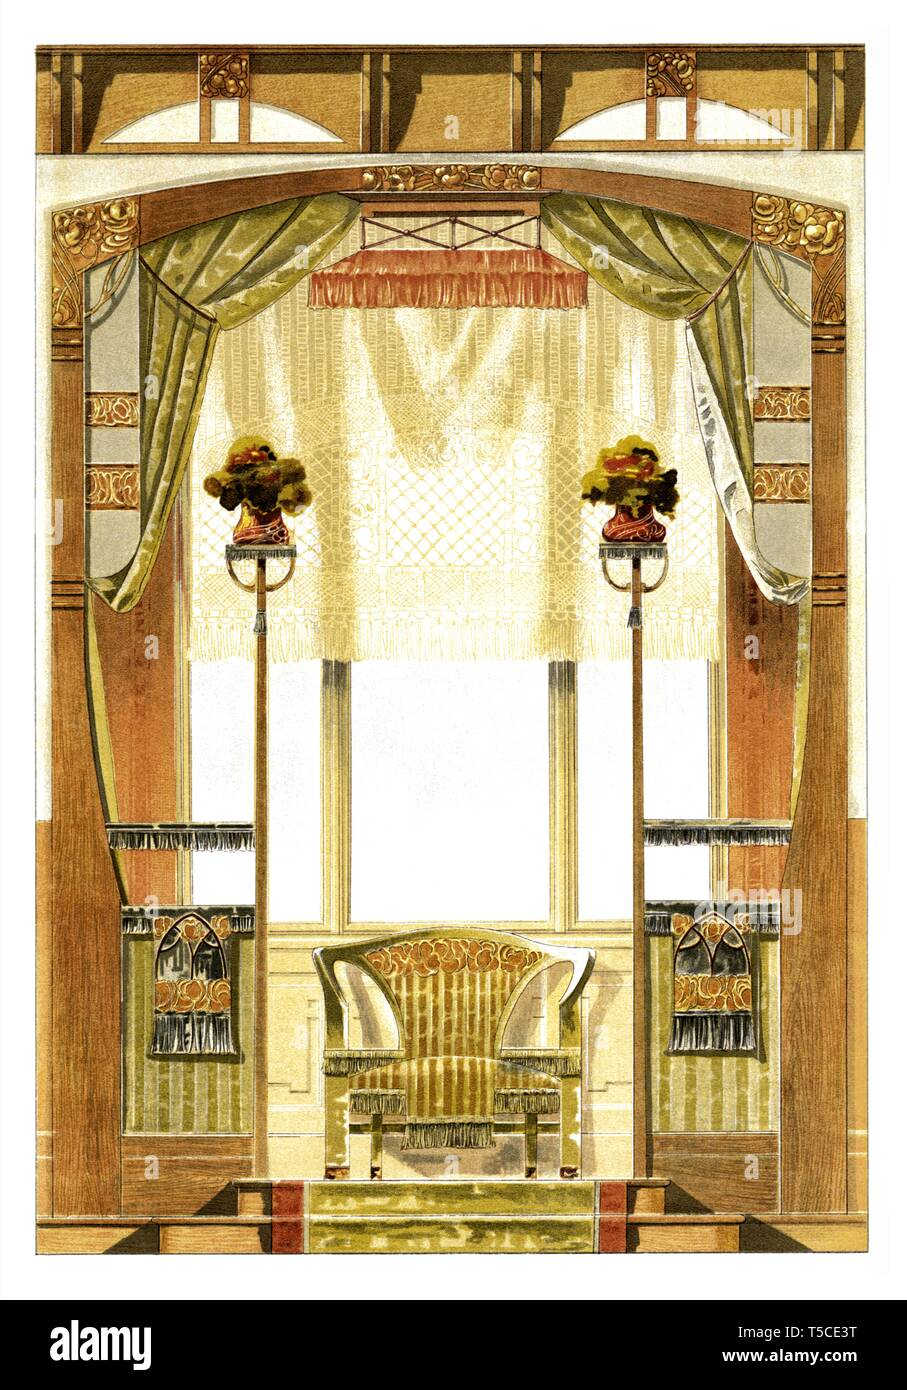 Décoration Art Nouveau Bay Decoration Art Nouveau Vintage Illustration By Modern